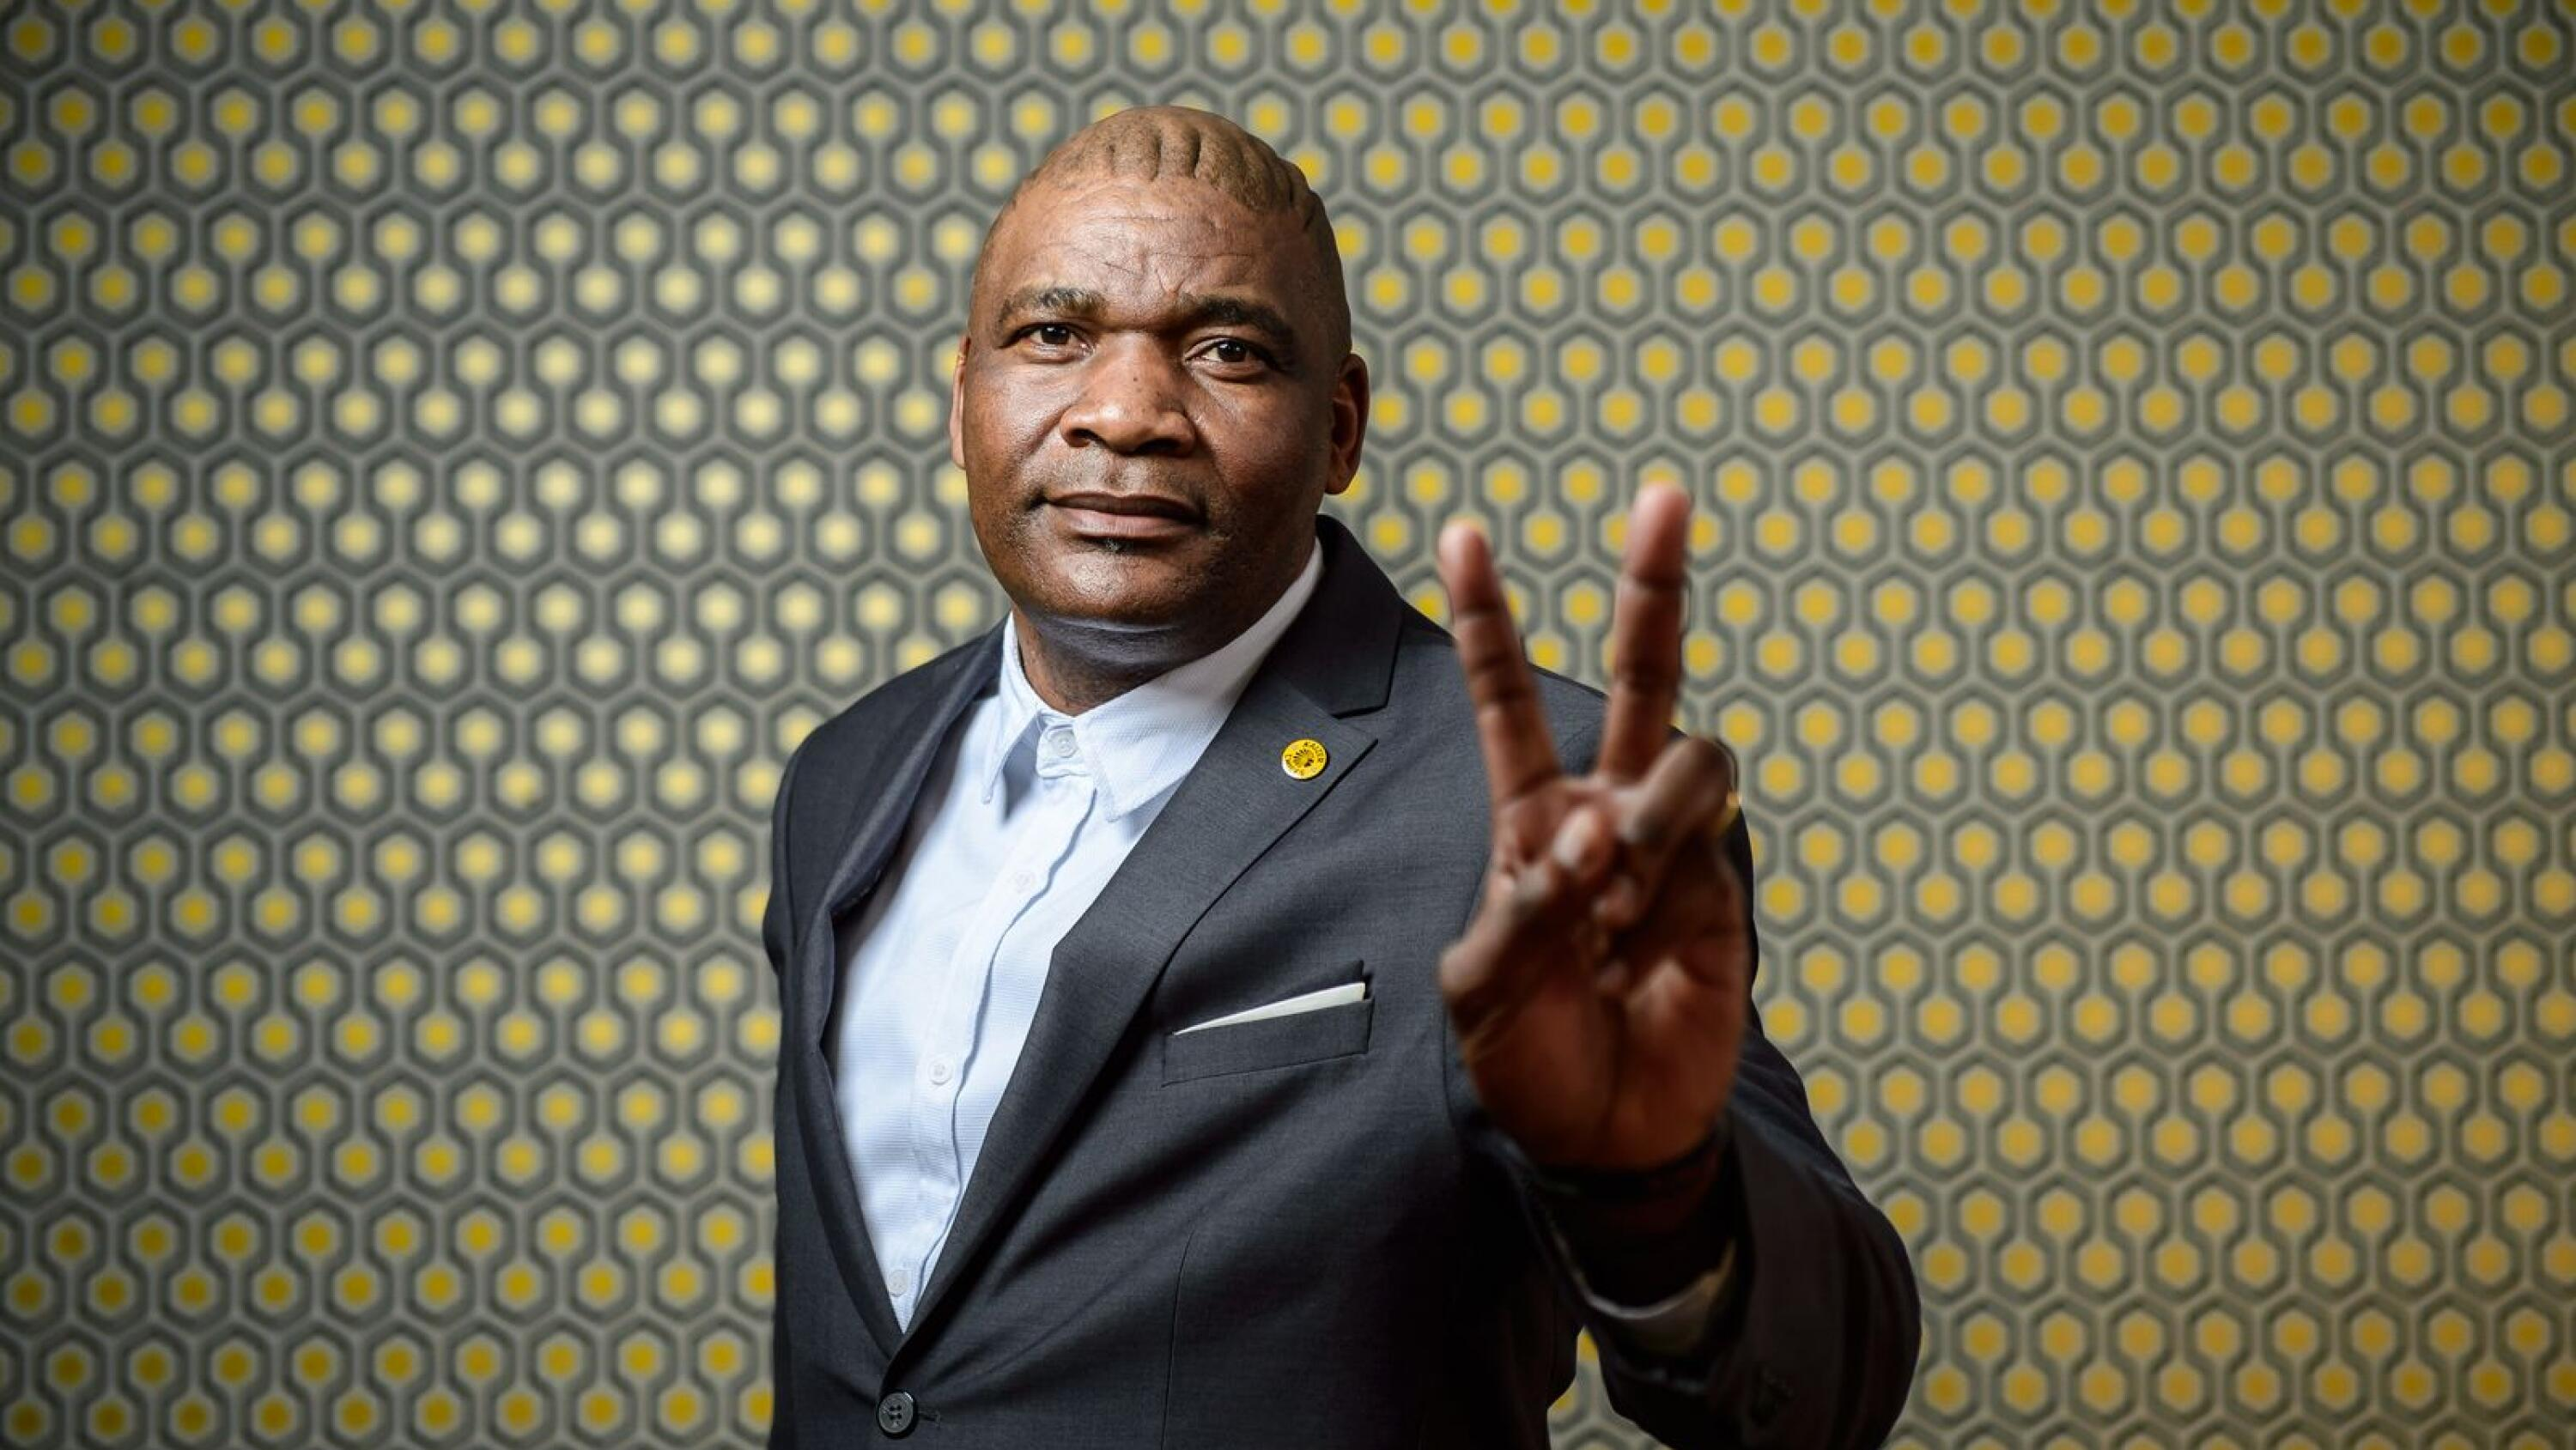 New Kaizer Chiefs head of technical and youth development Molefi Ntseki says his role will be to identify players who understand the culture and tradition of the club